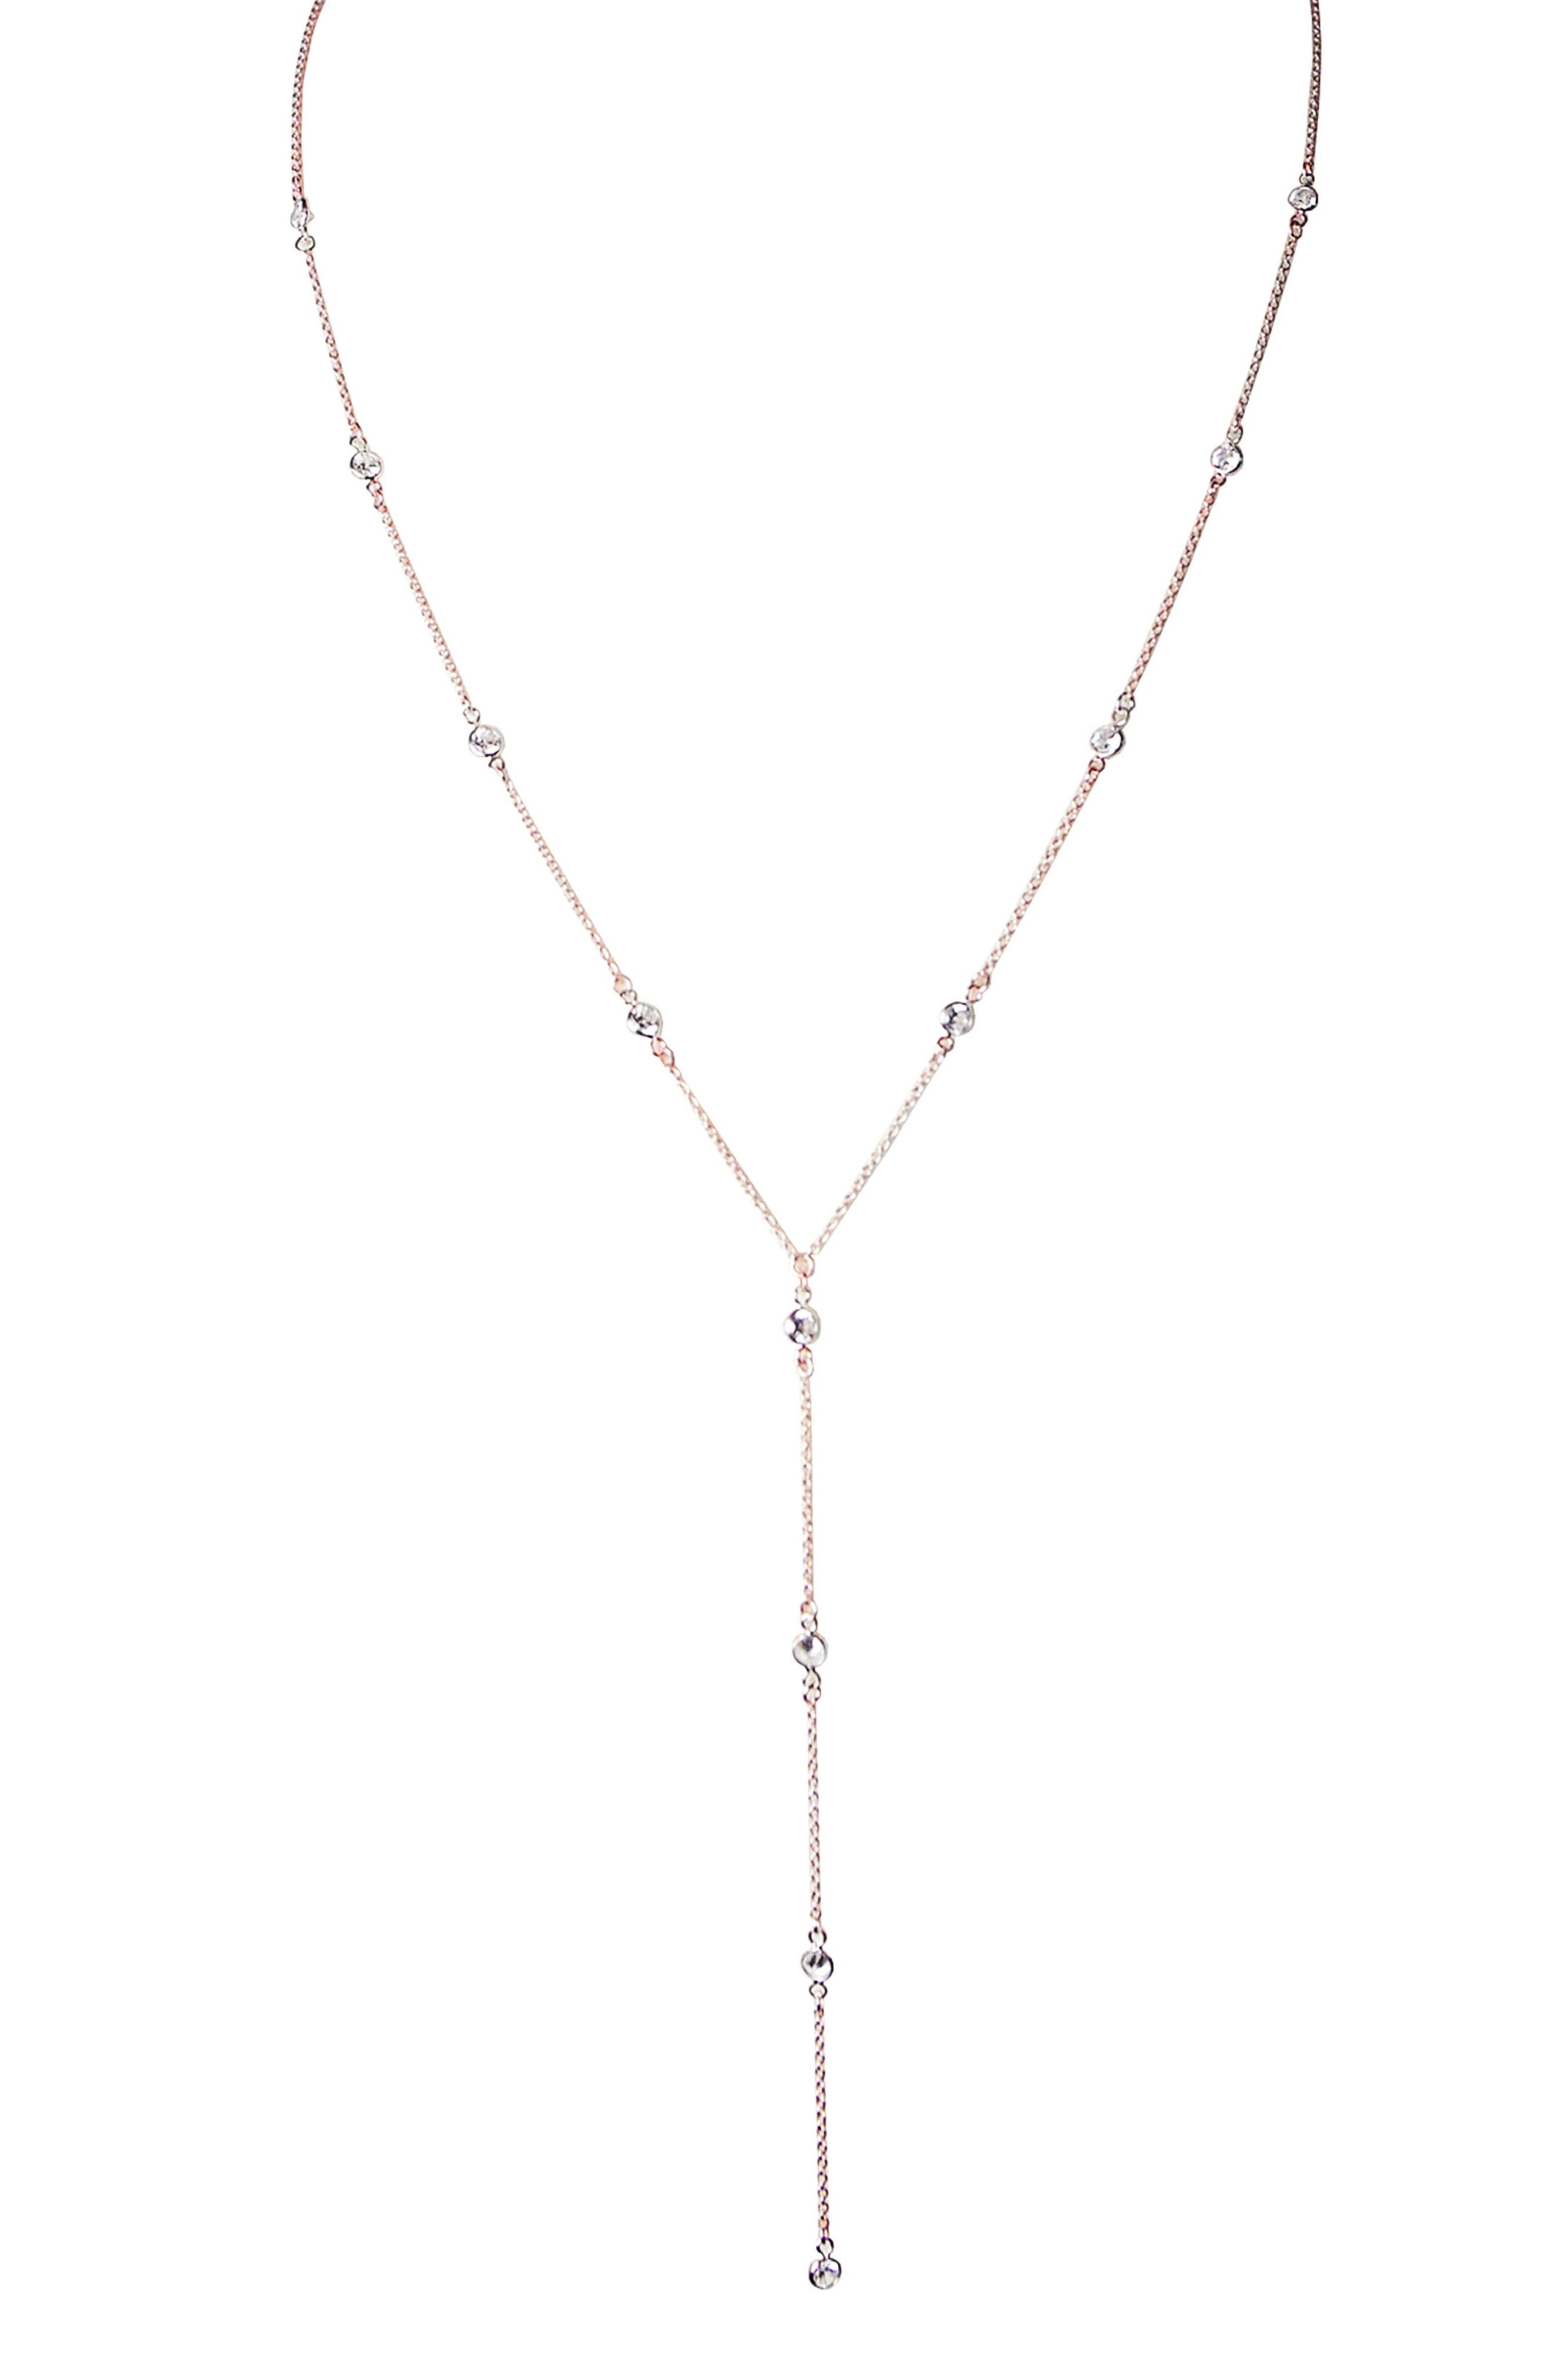 Isabella Crystal Y Necklace,                             Main thumbnail 1, color,                             ROSE GOLD